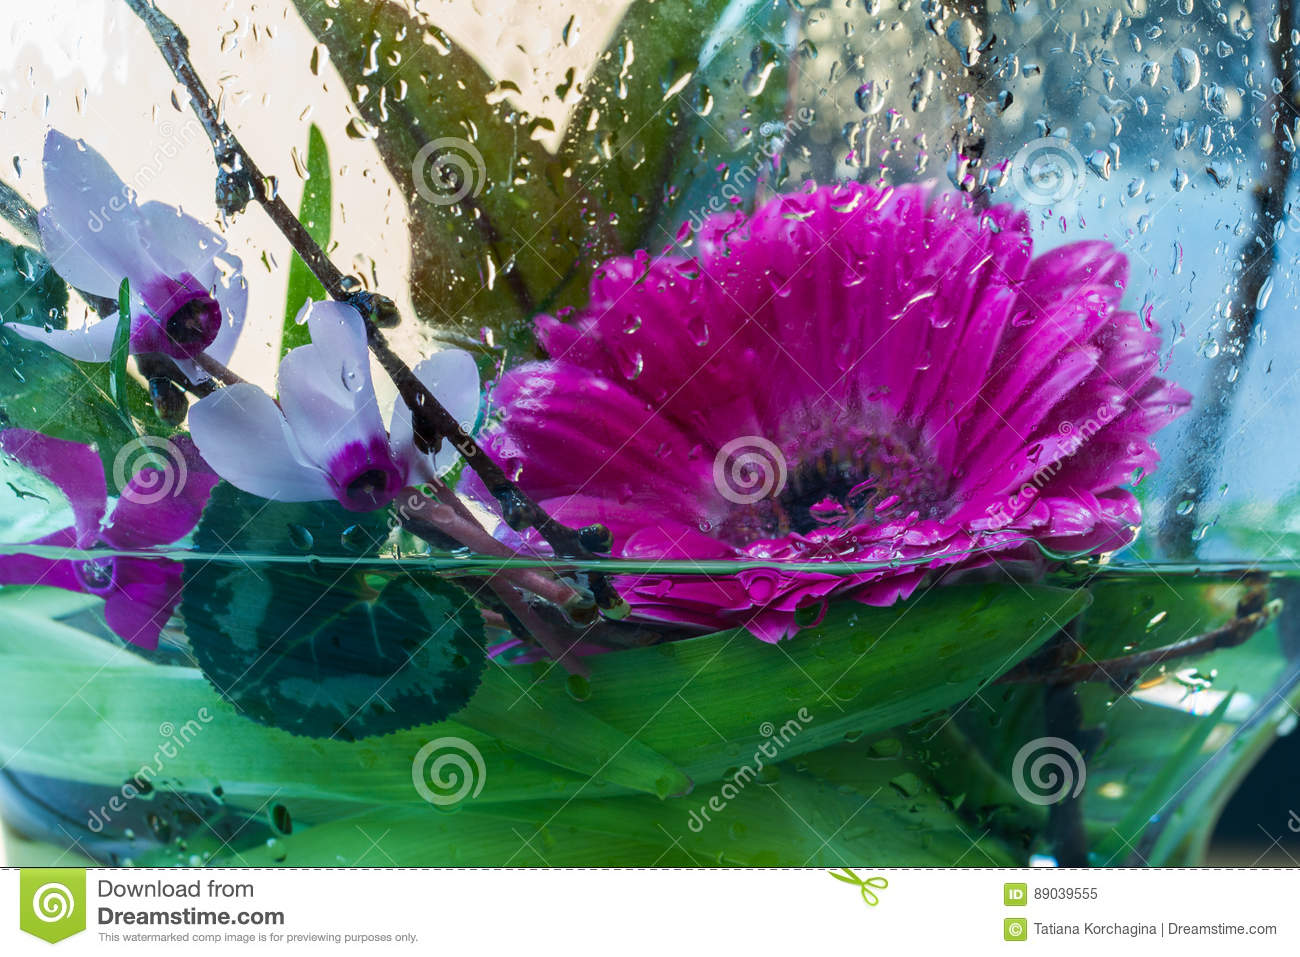 Freshness, flowers in the water drops.